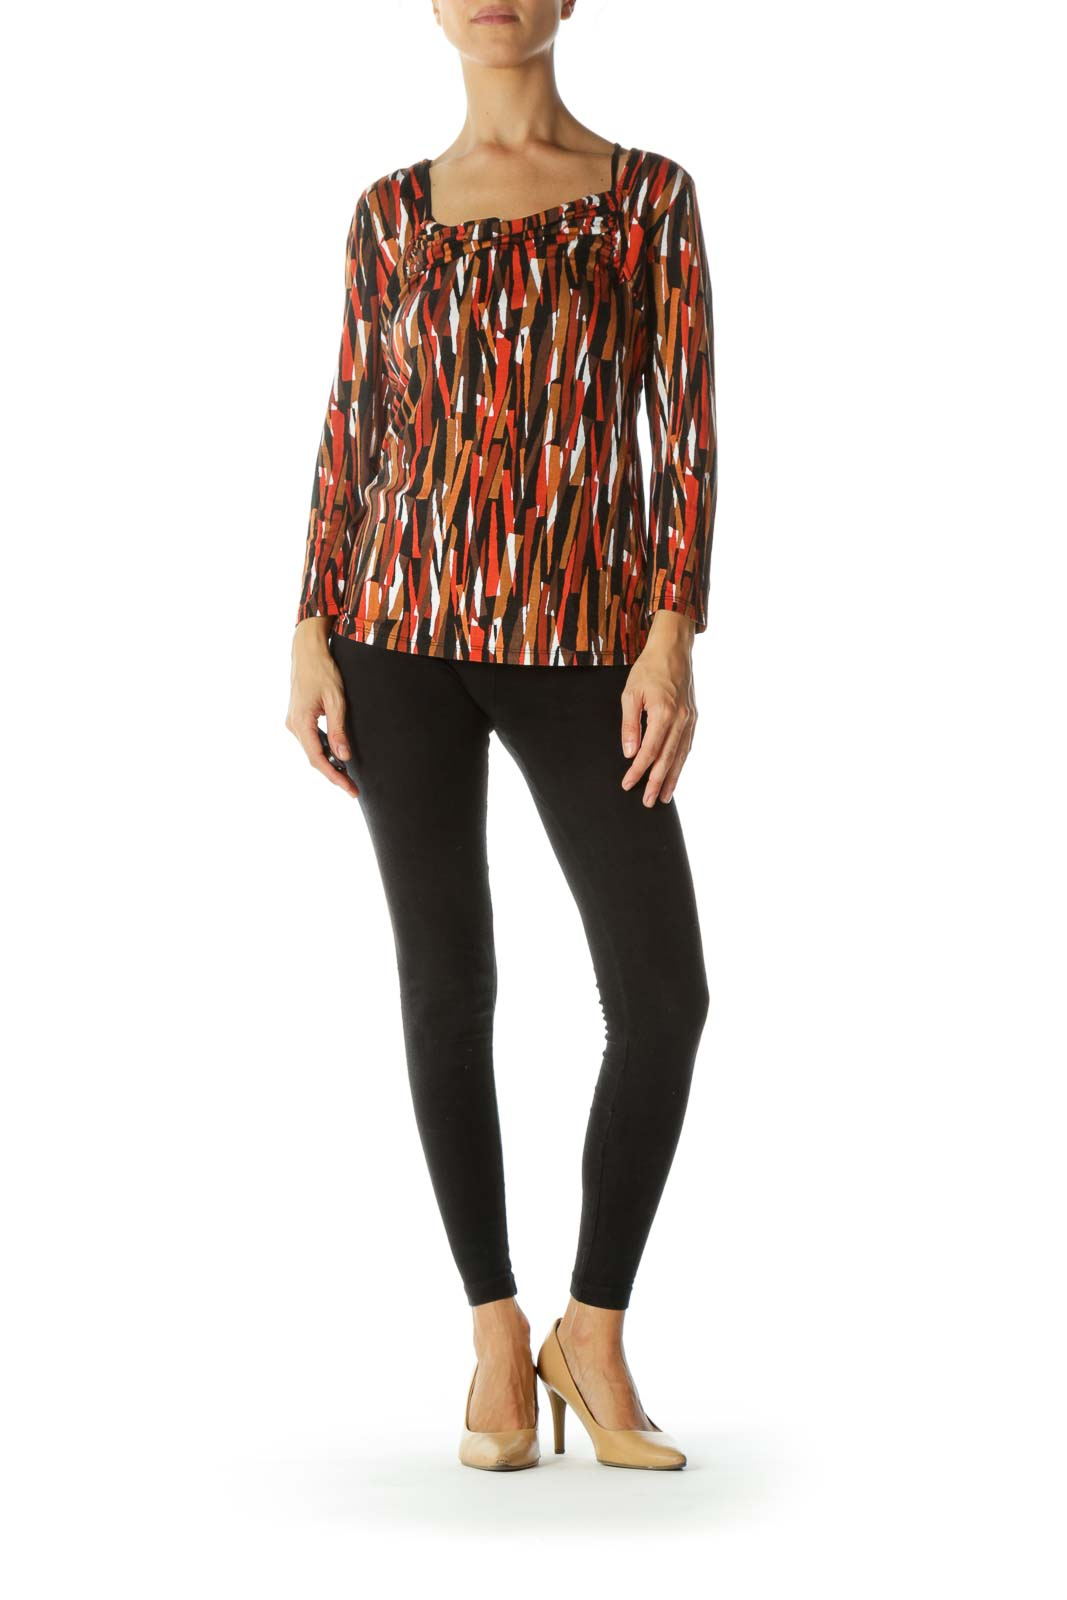 Black and Orange Long Sleeve with Geometric Design